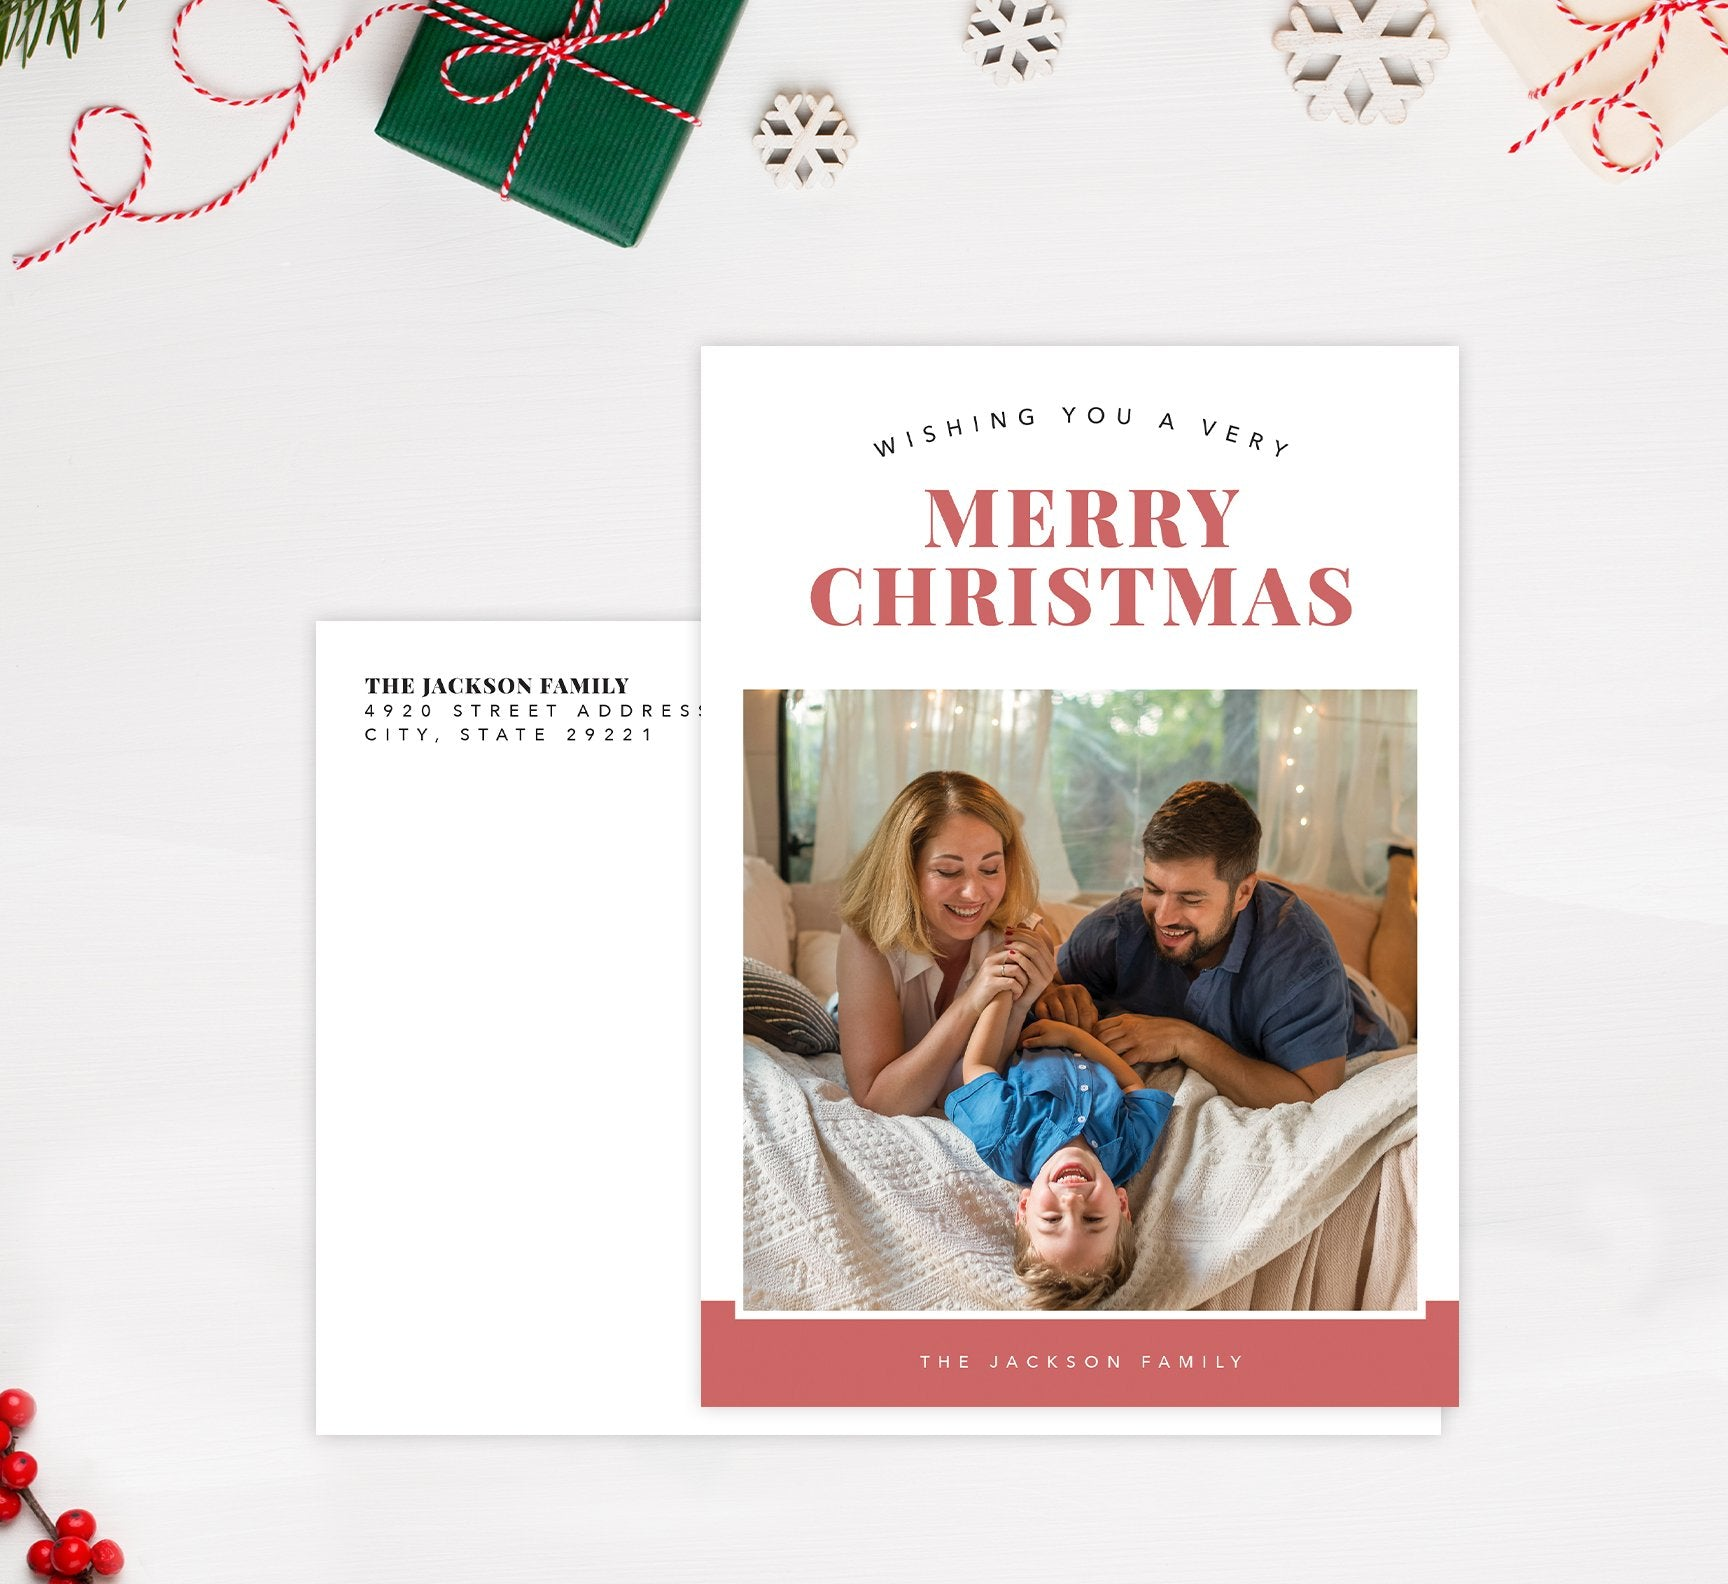 Happy Pink Holiday Card Mockup; Holiday card with envelope and return address printed on it.